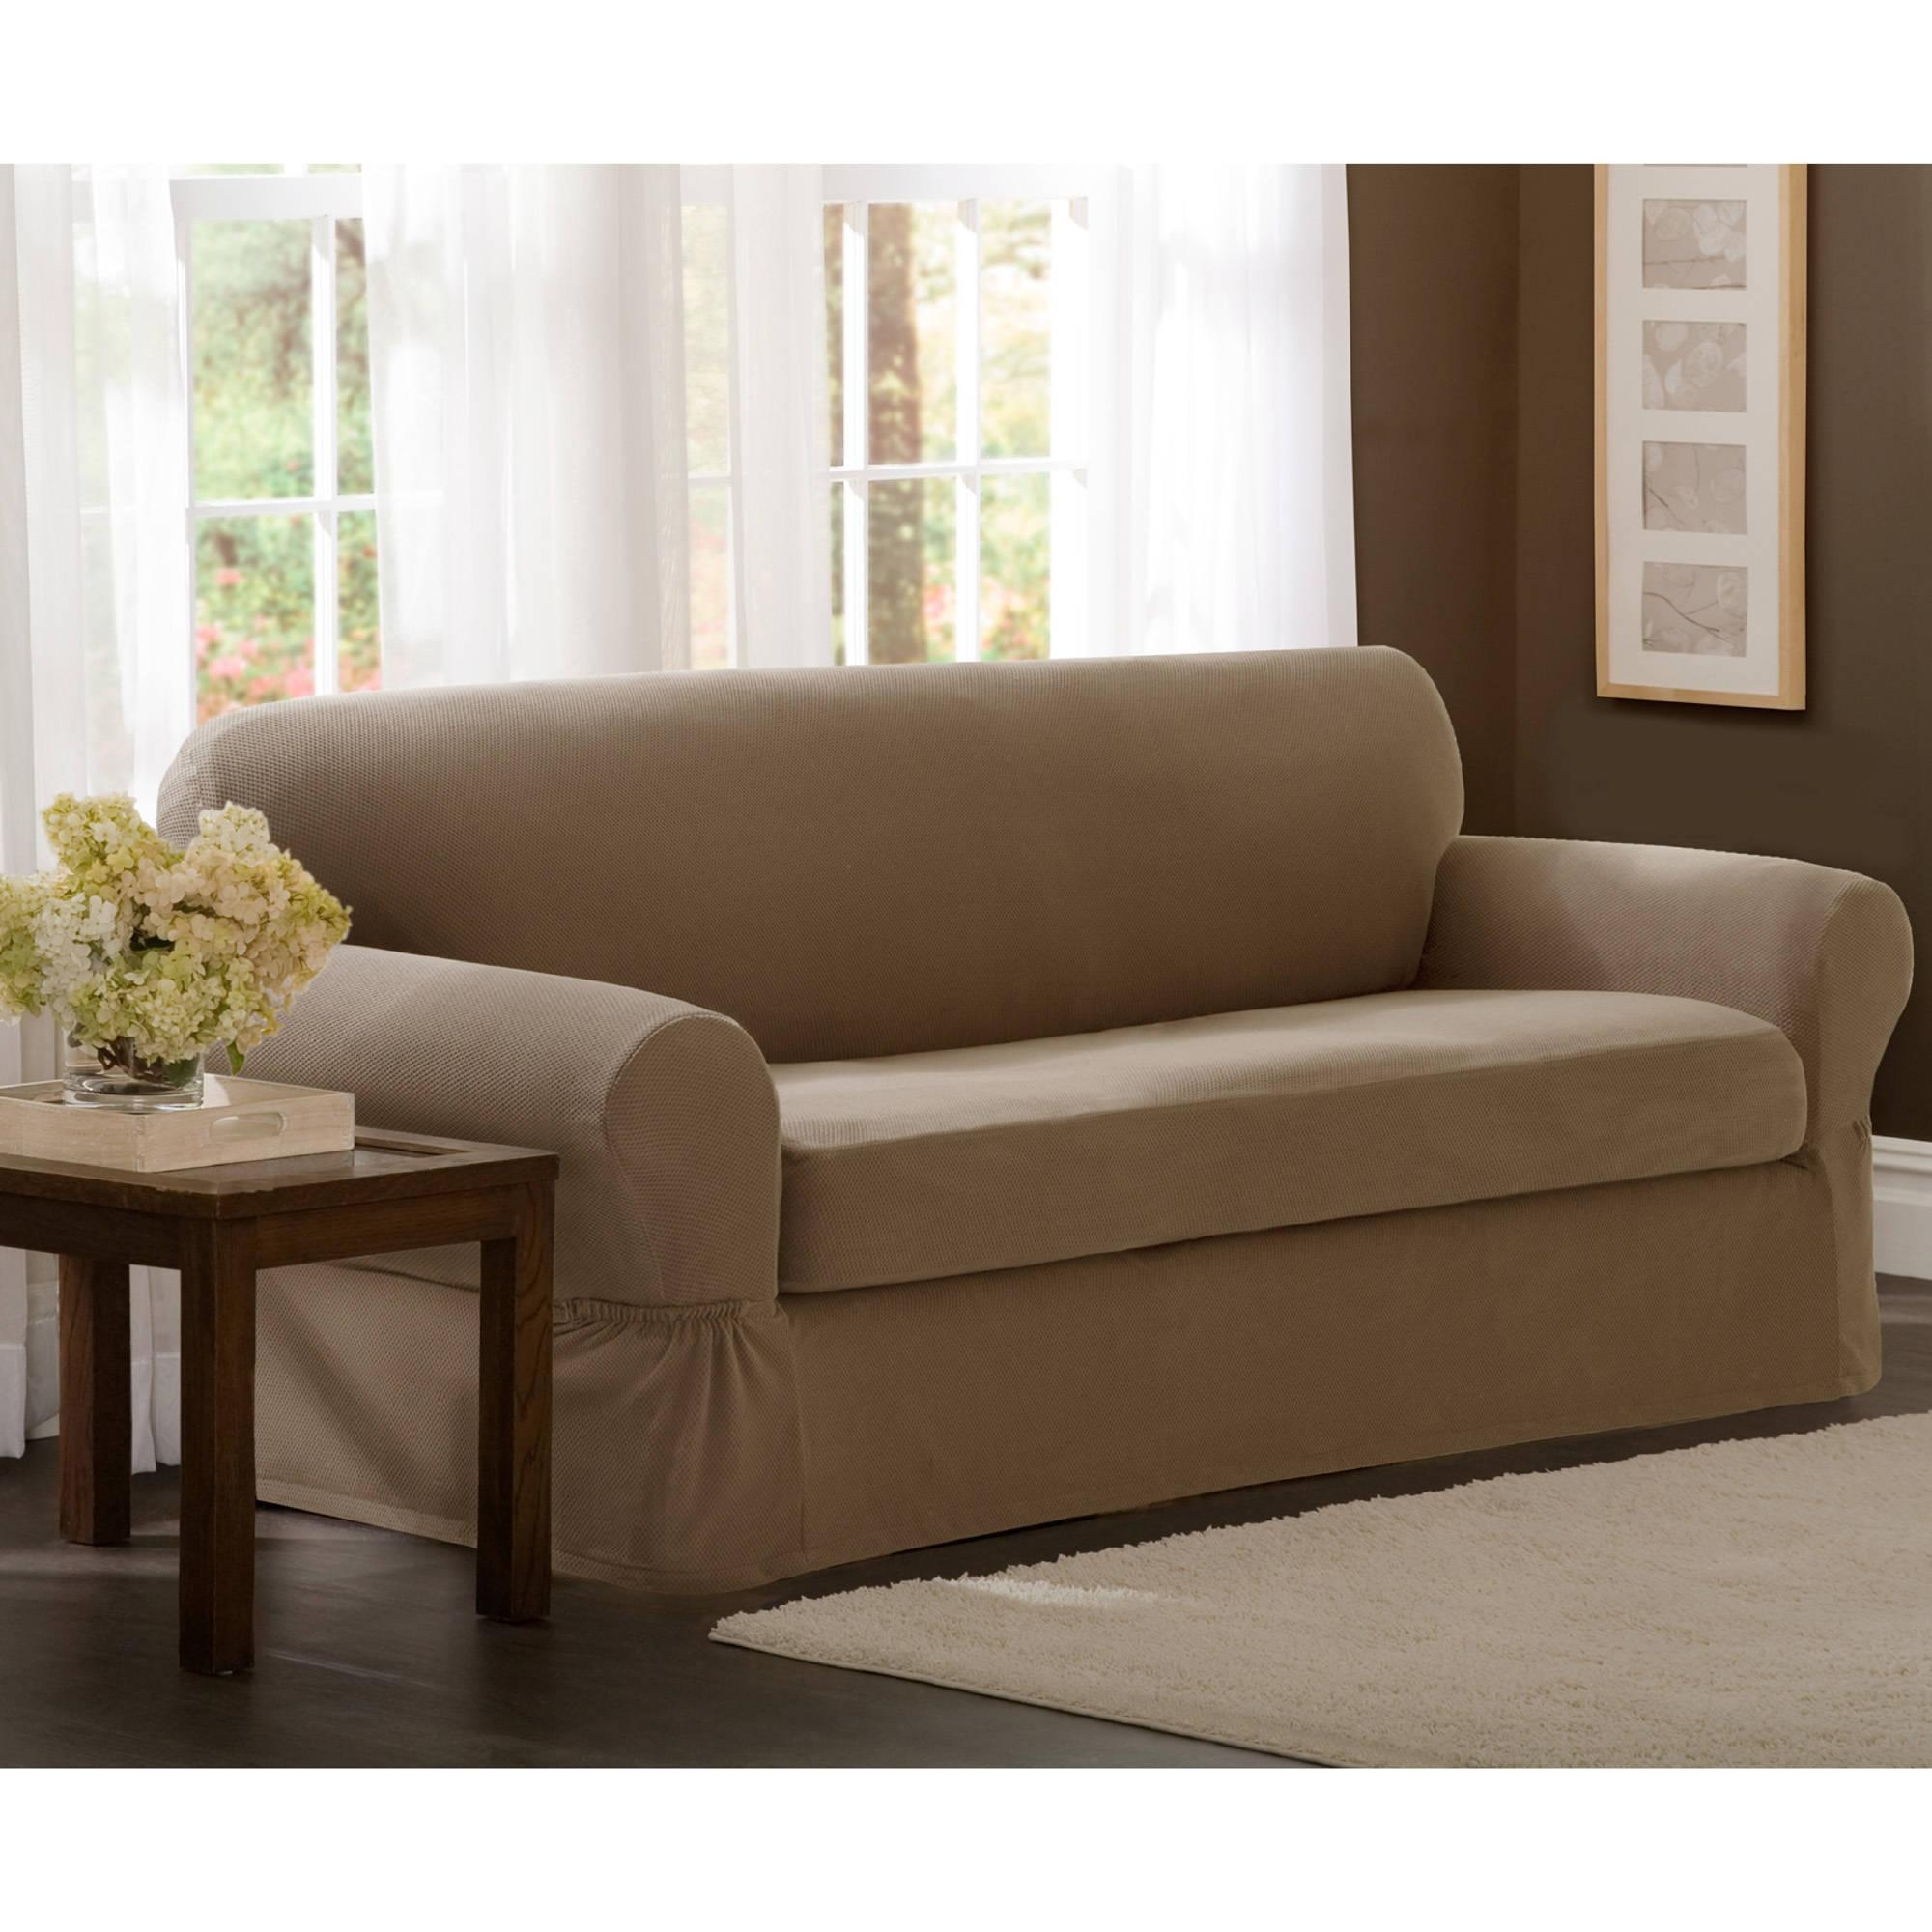 Sofas Center : 34Cf229A12Ee 1 Piece Ton Sofa Slipcover Sure Fit Within Suede Slipcovers For Sofas (View 4 of 20)